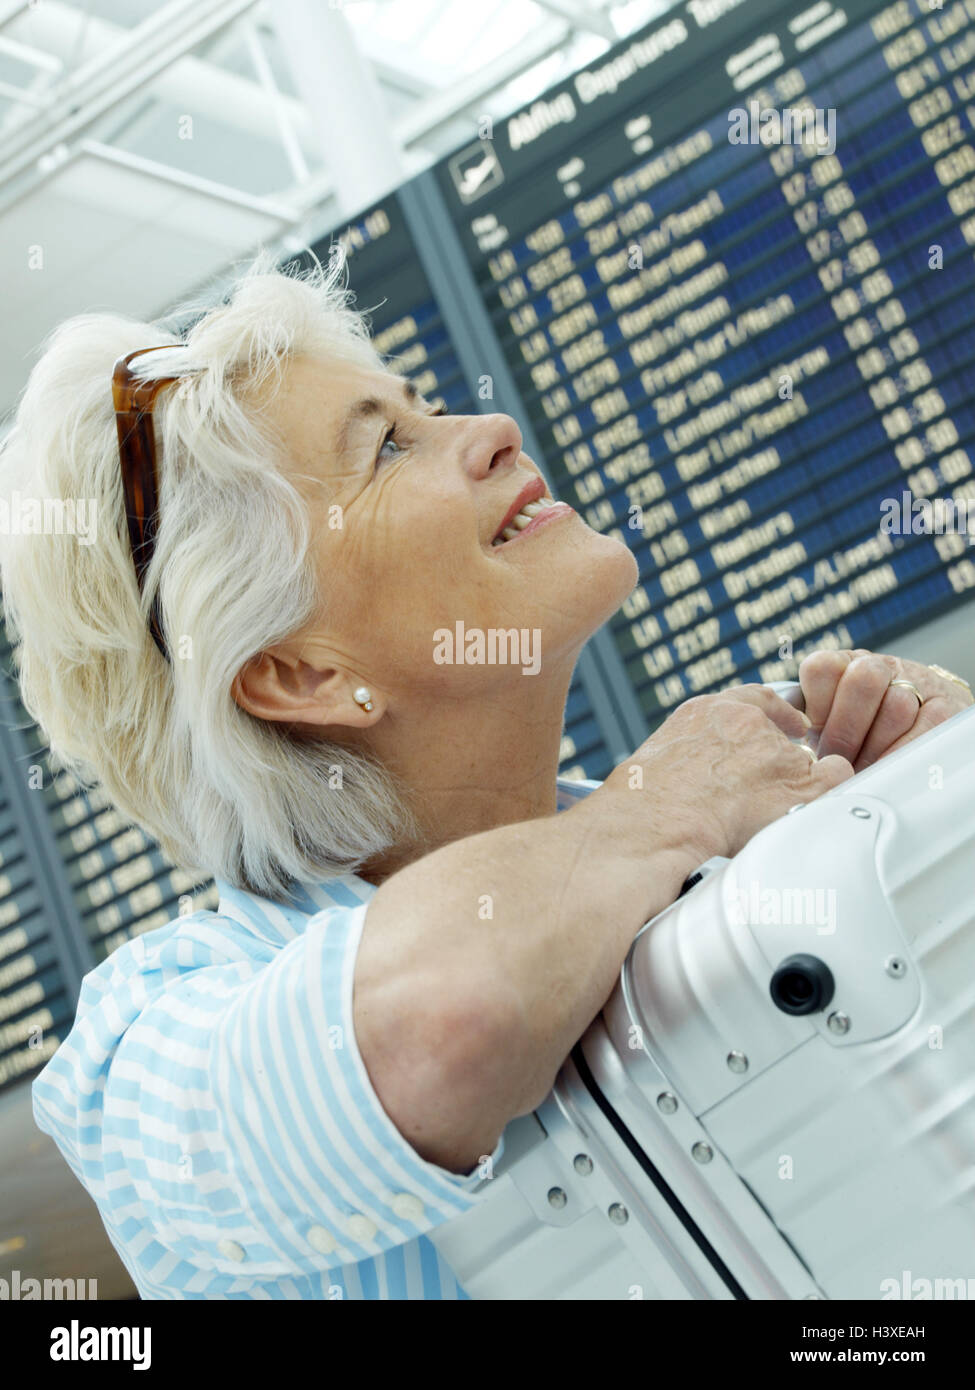 Senior, airport, luggage, travel, information board, happy, smile, portrait, side view, airport hall, information - Stock Image